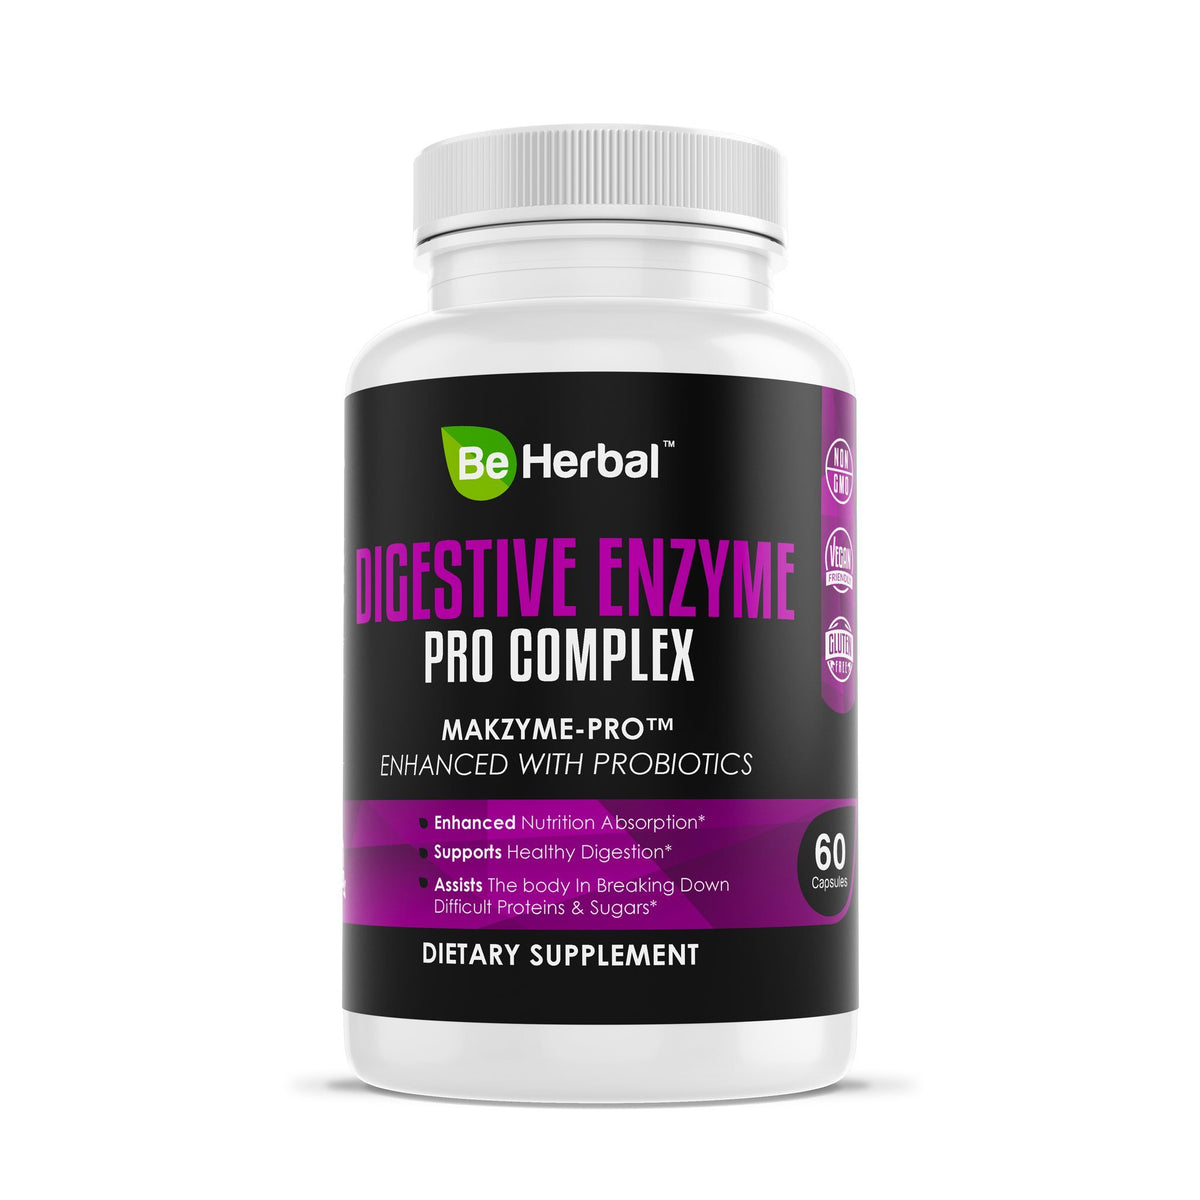 Digestive Enzyme Pro Complex - Enhanced with Probiotics Herbal Supplements Be Herbal®